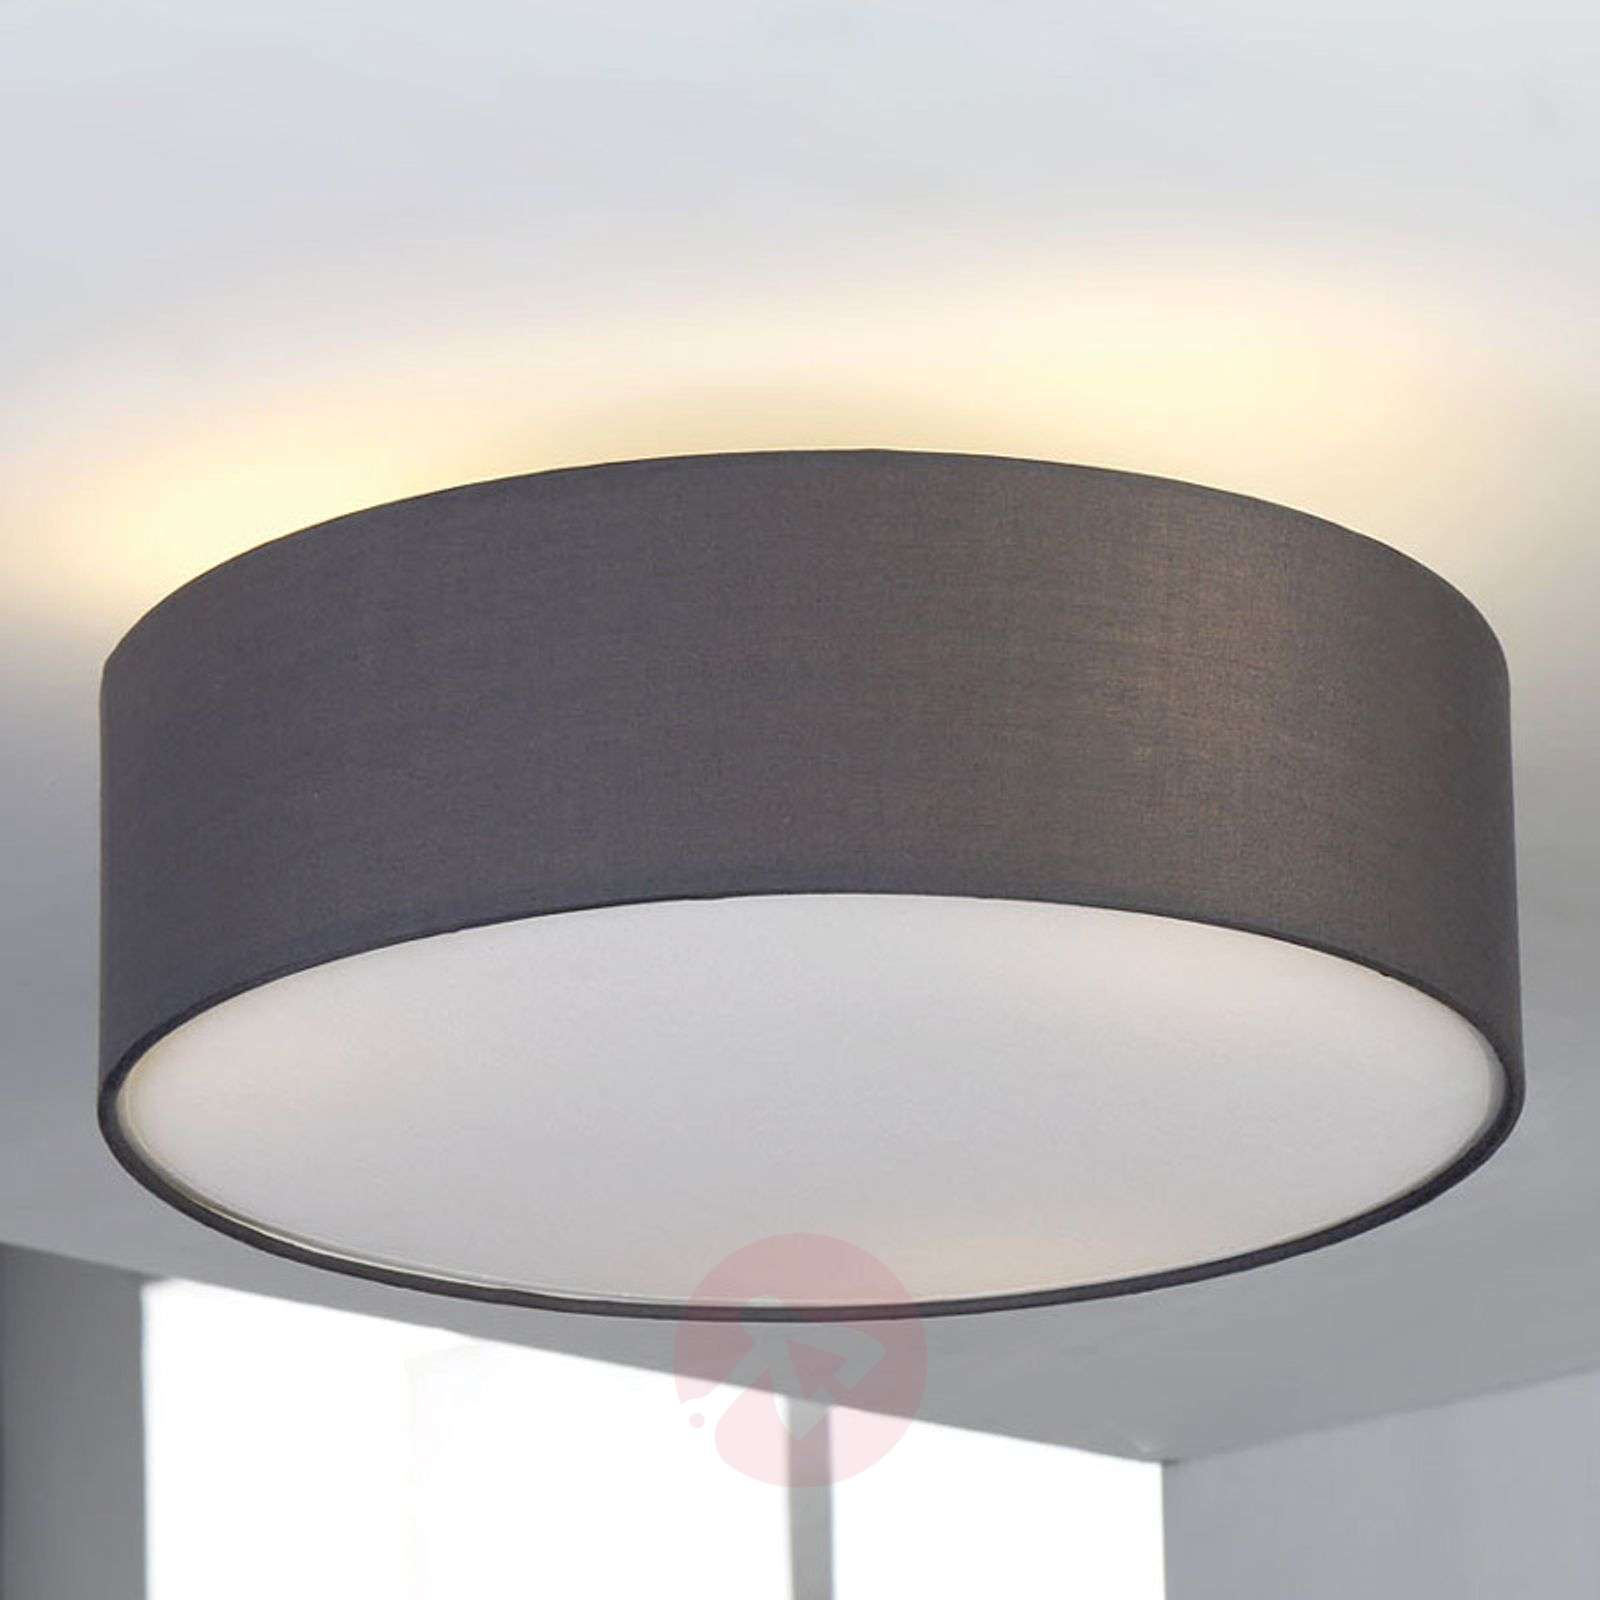 Ceiling Lights Grey : Grey fabric ceiling light sebatin lights